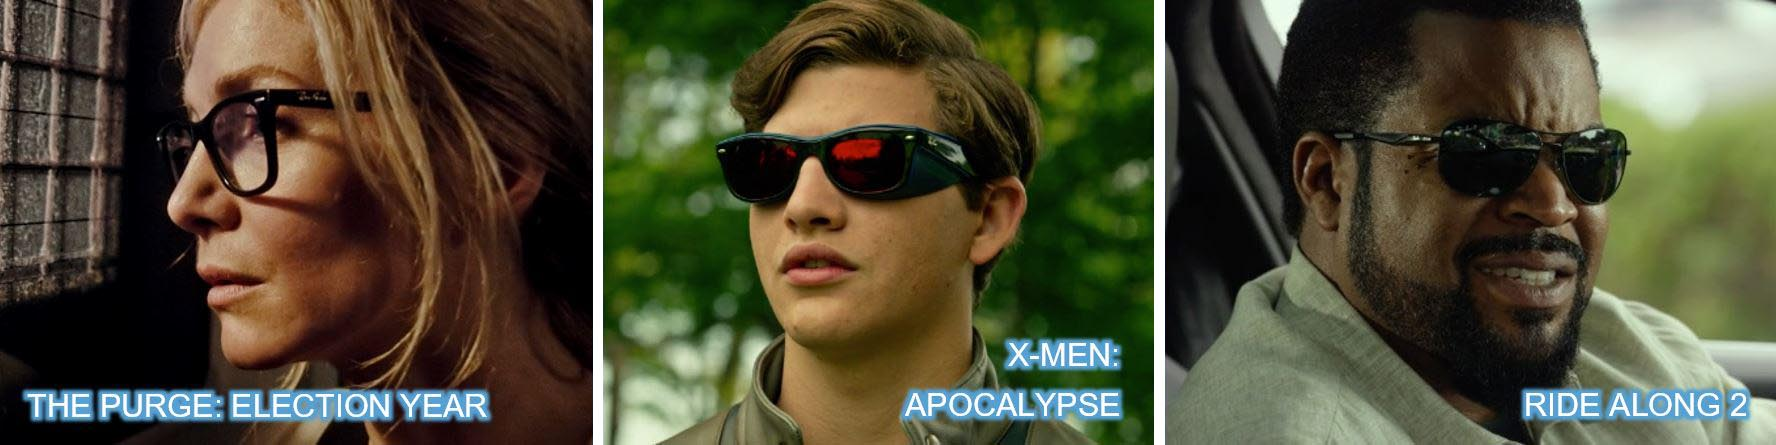 Ray ban ray-ban glasses sunglasses the purge election year x-men apocalypse x men ride along 2 ice cube concave brand tracking top 10 Brands 2016 top 10 product placement